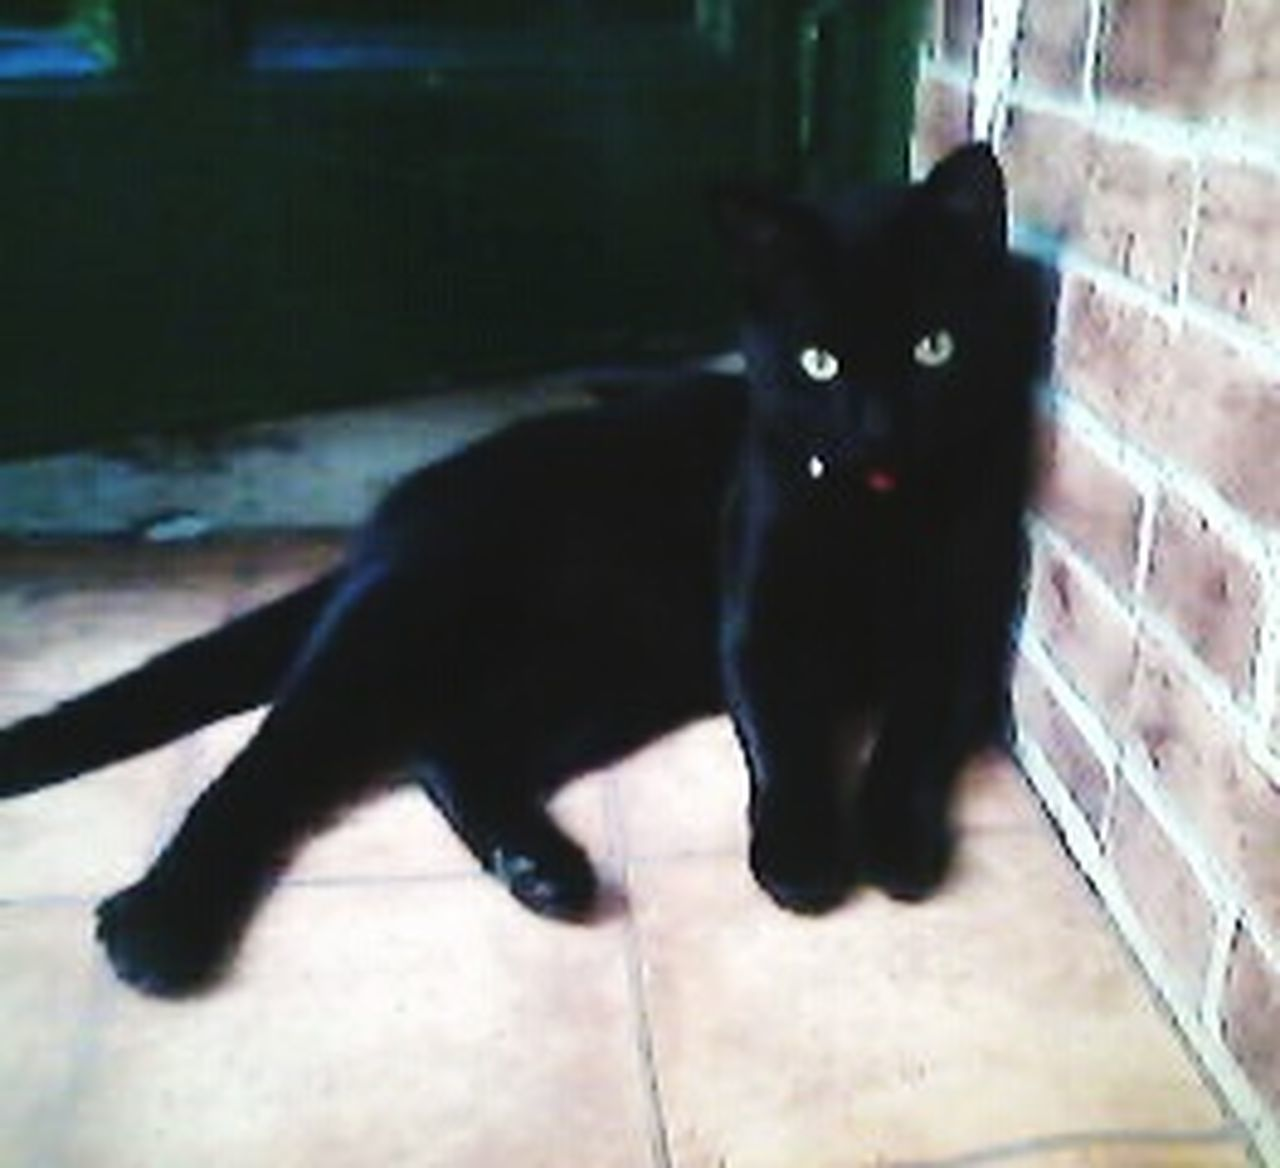 Pets Animal Themes Domestic Animals One Animal Domestic Cat Mammal Full Length Animal No People Animal Behavior Indoors  Day Beauty In Nature Cat♡ Cats 🐱 Black Cat Photography Black Cats Are Beautiful Black Cats Lovers Black Cats Black Cat <3 Cats Lovers  Gatos 😍